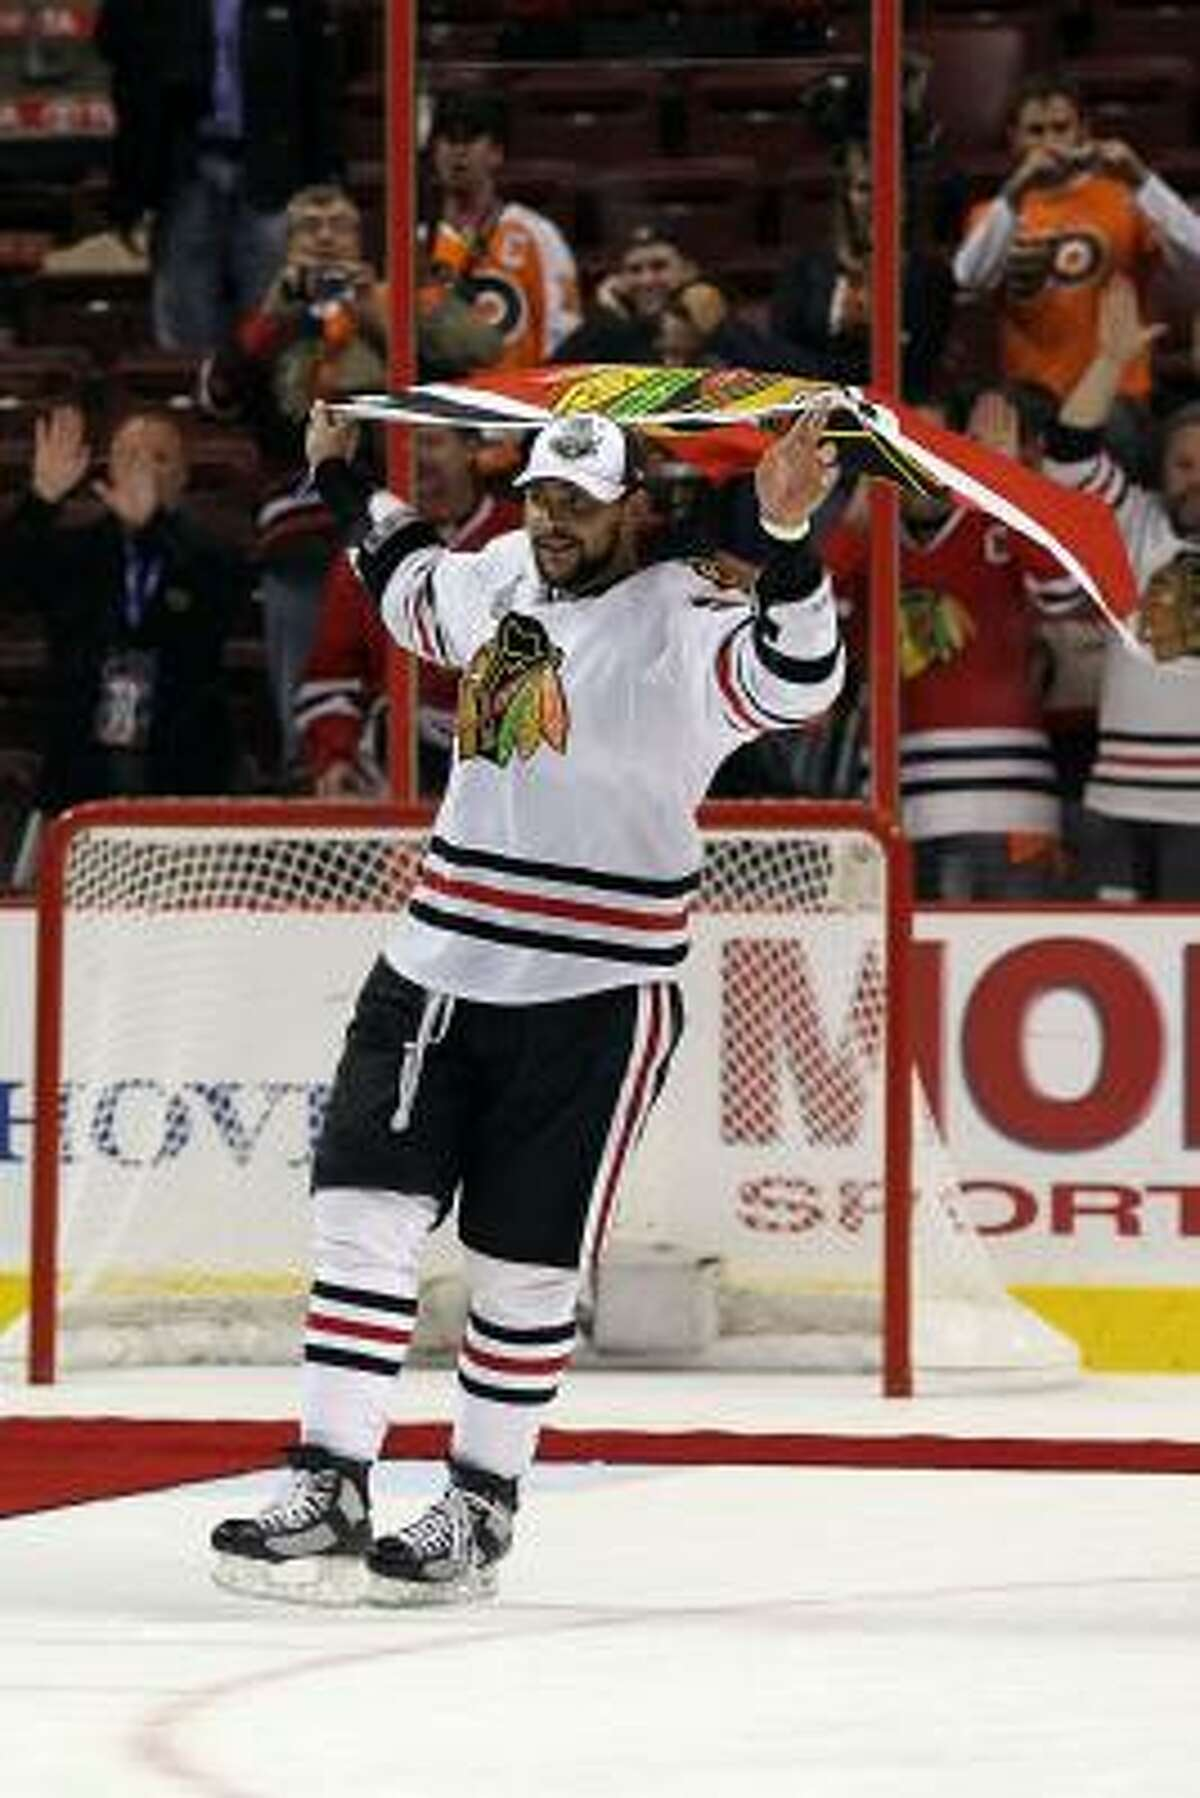 Dustin Byfuglien skates with the Blackhawks flag after teammate Patrick Kane scored the game-winning goal in overtime to defeat the Philadelphia Flyers 4-3 and win the Stanley Cup.